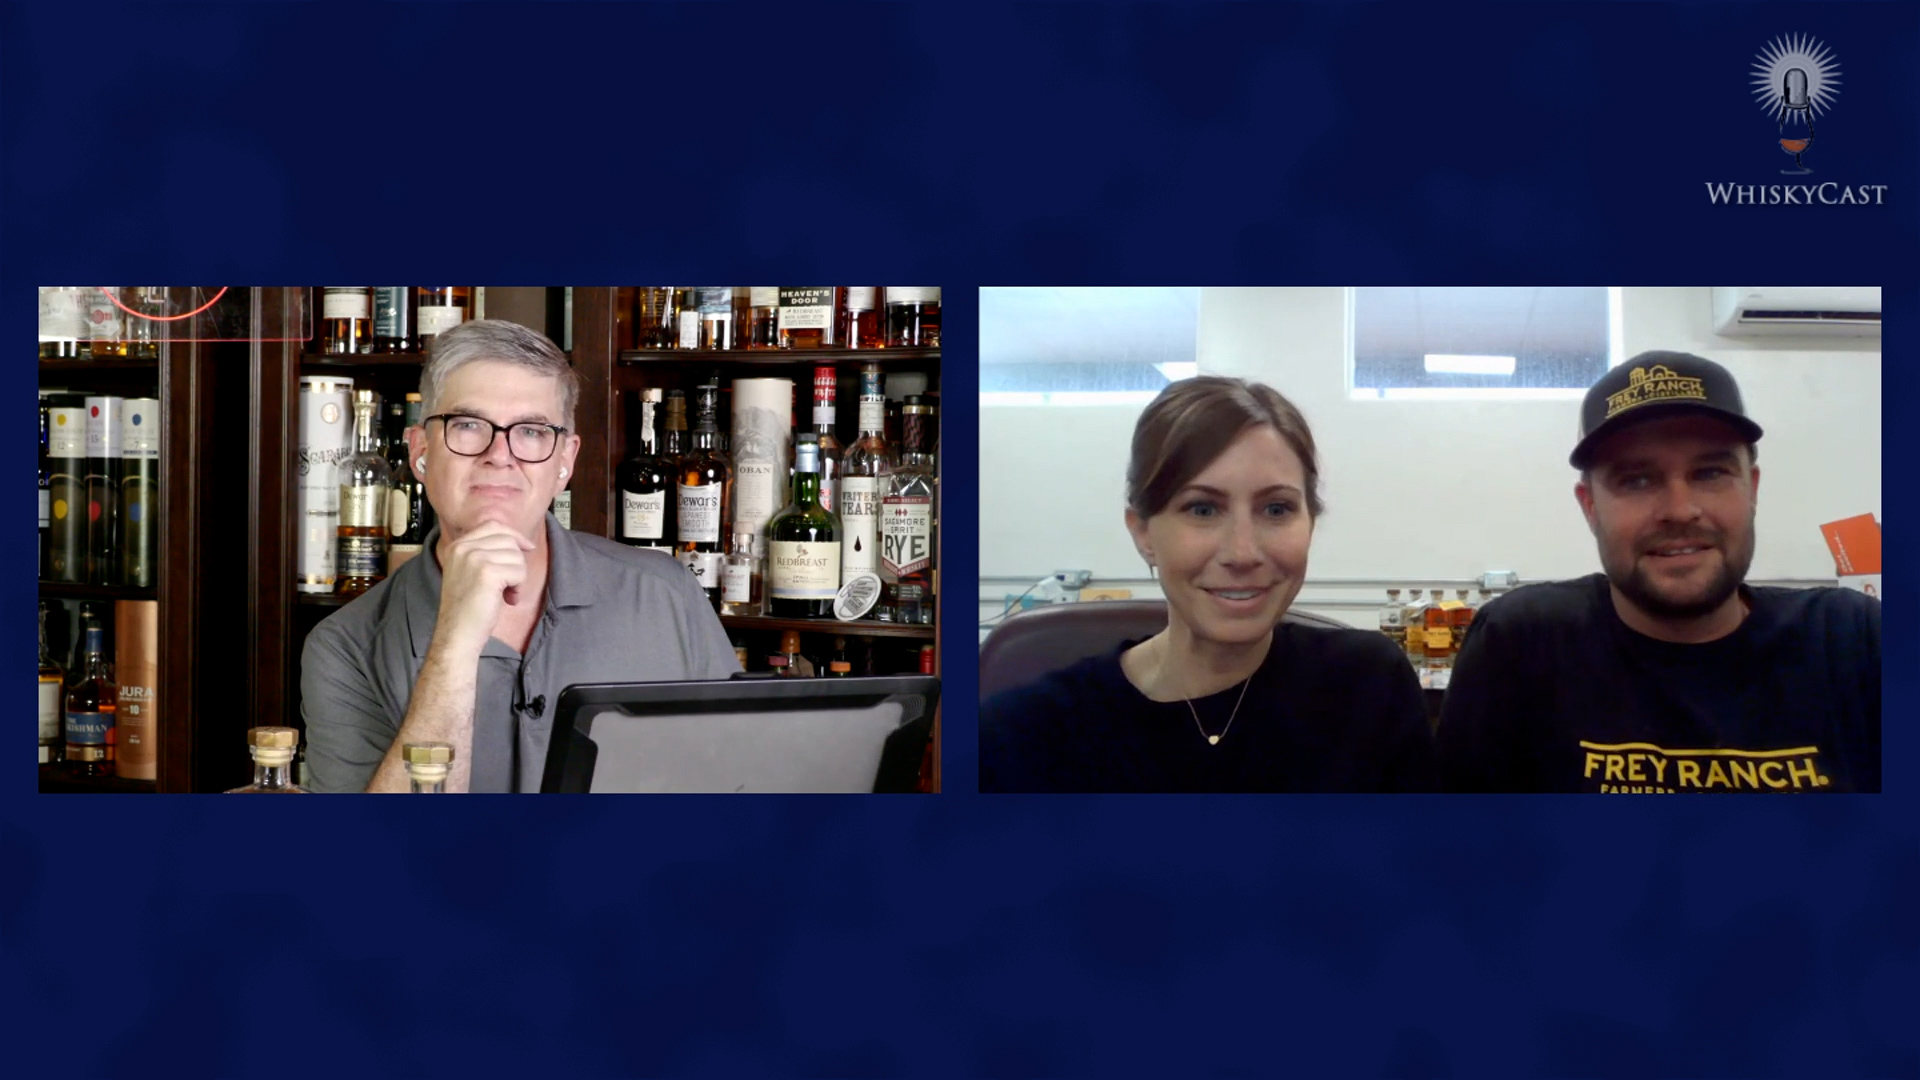 Ashley and Colby Frey of Nevada's Frey Ranch Distillery joined us for the latest webcast, along with actor and whisky lover Beth Behrs and Gareth Howells of Aberfeldy. The on-demand replay is available now at our YouTube channel.